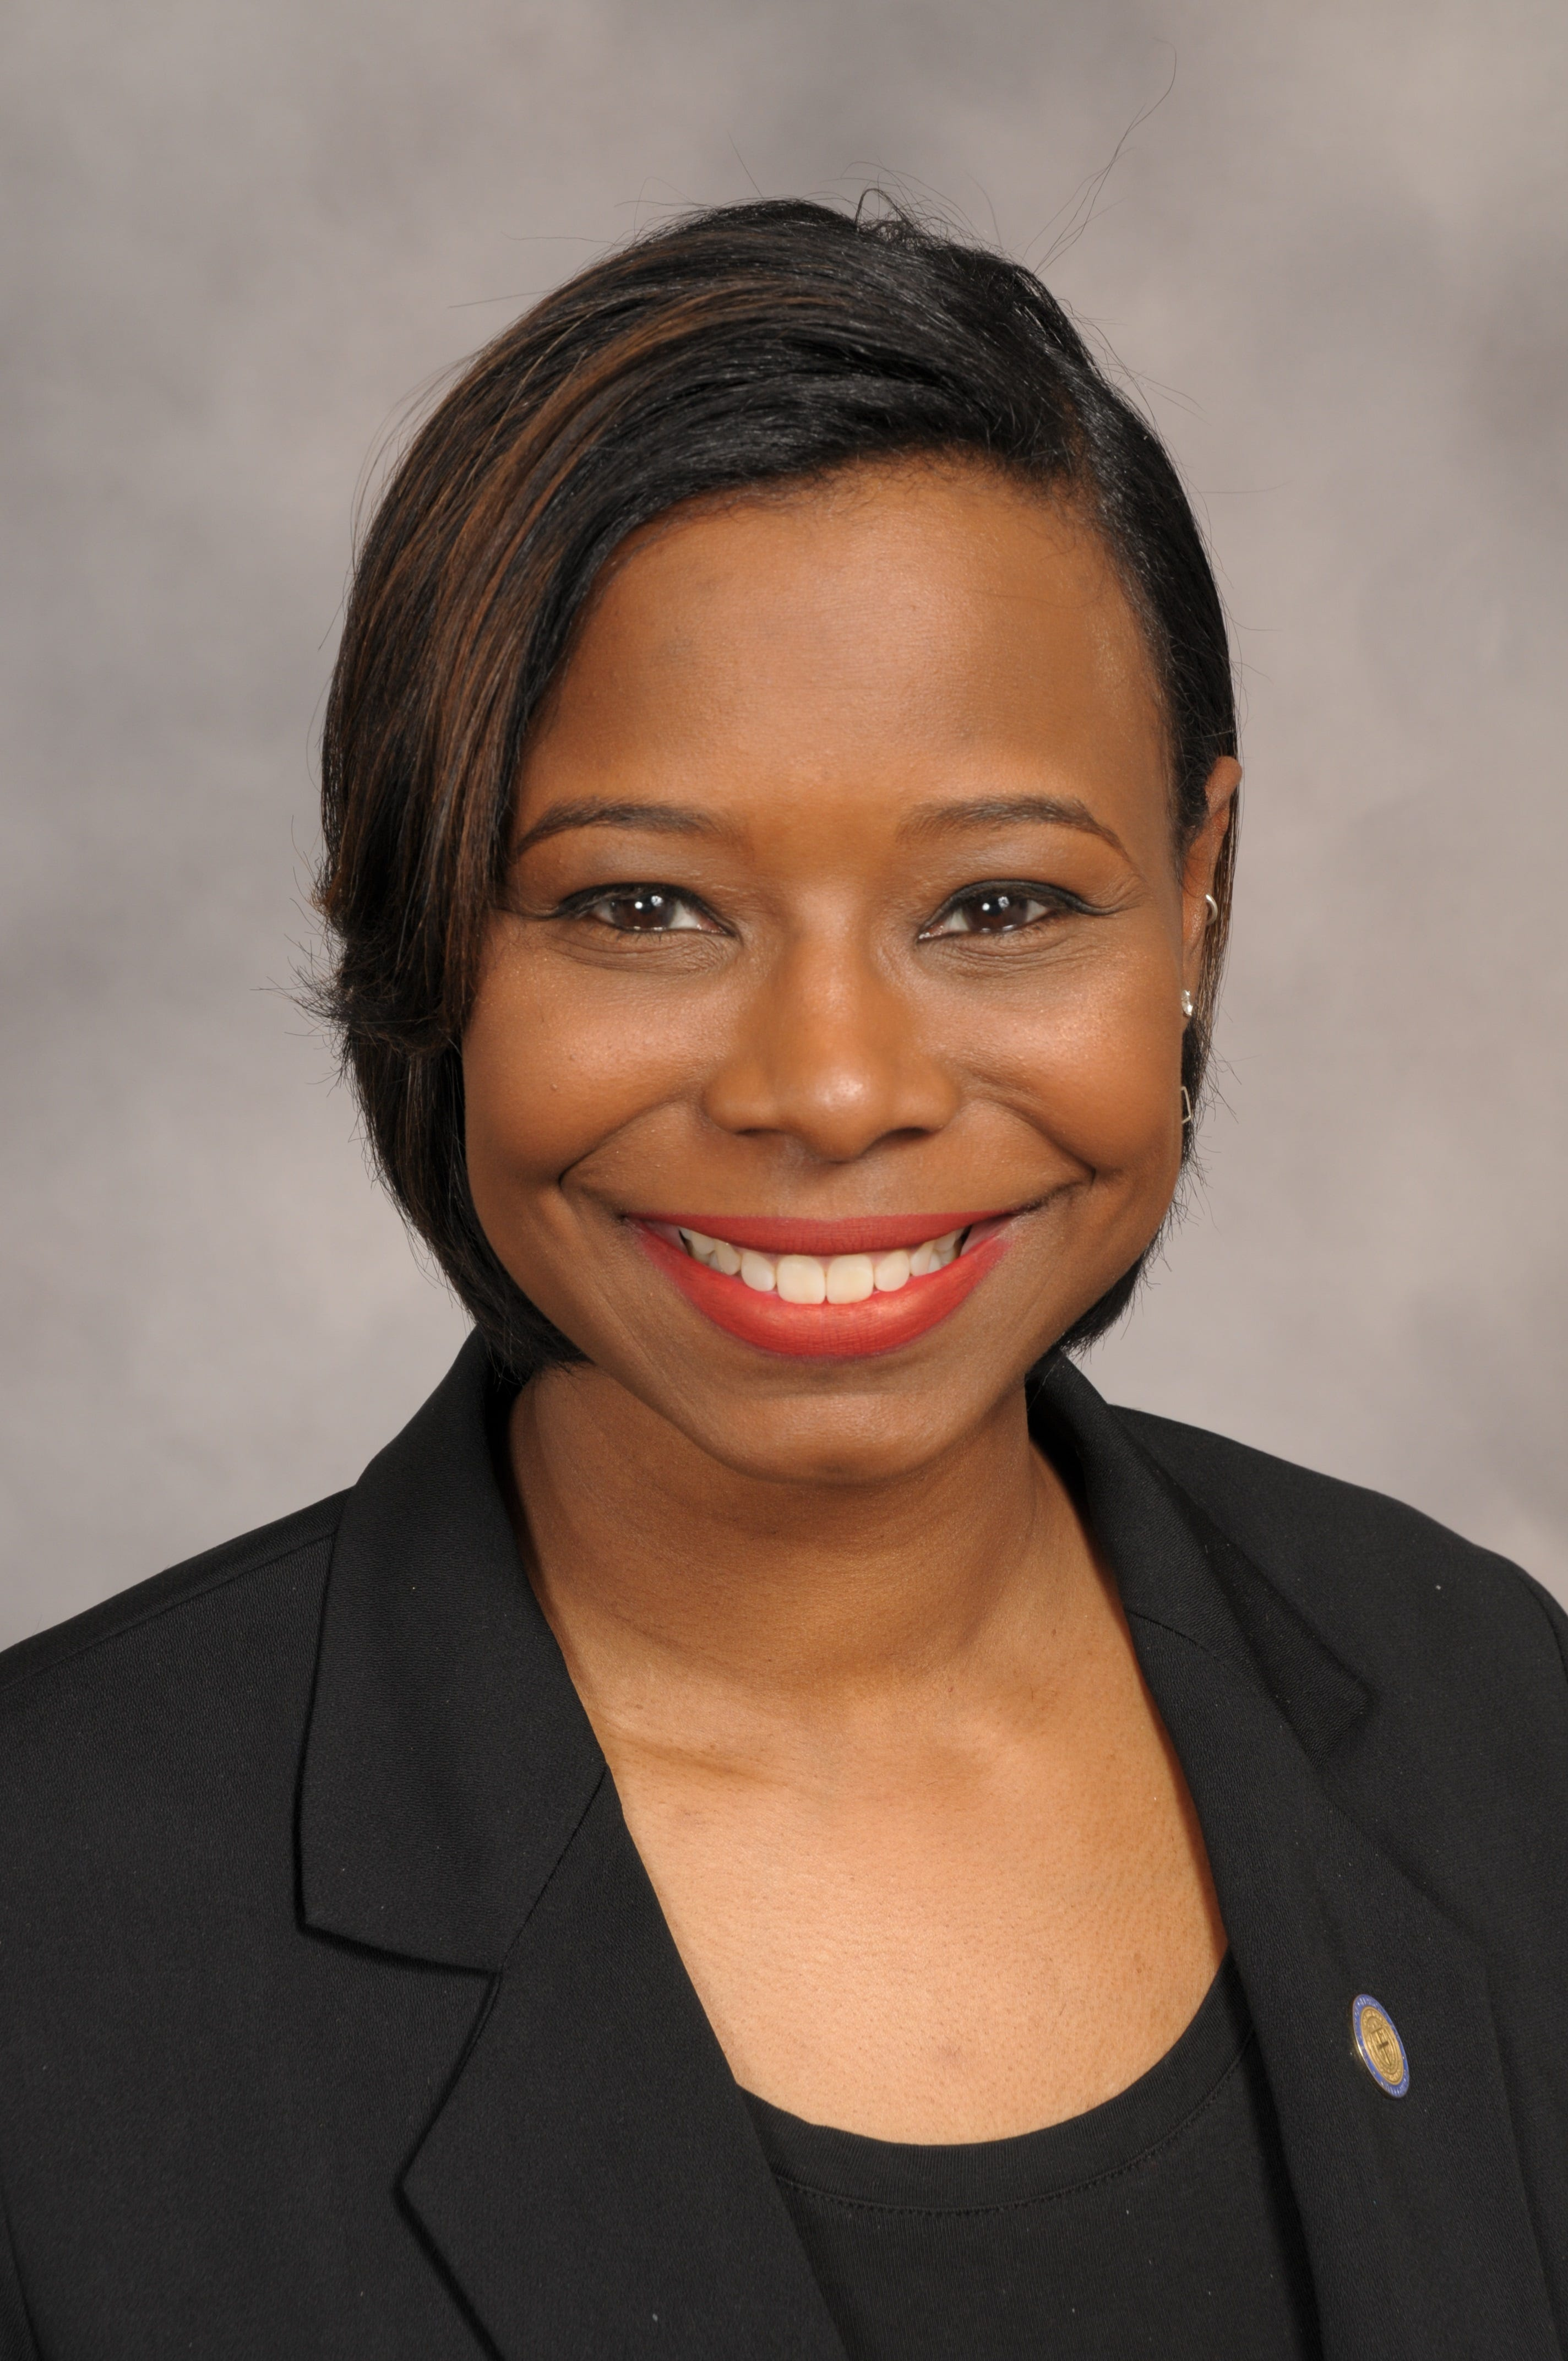 Ward 7 Councilwoman Nikki Nice is among those seeking changes at scrapyards where explosions are upsetting neighbors.